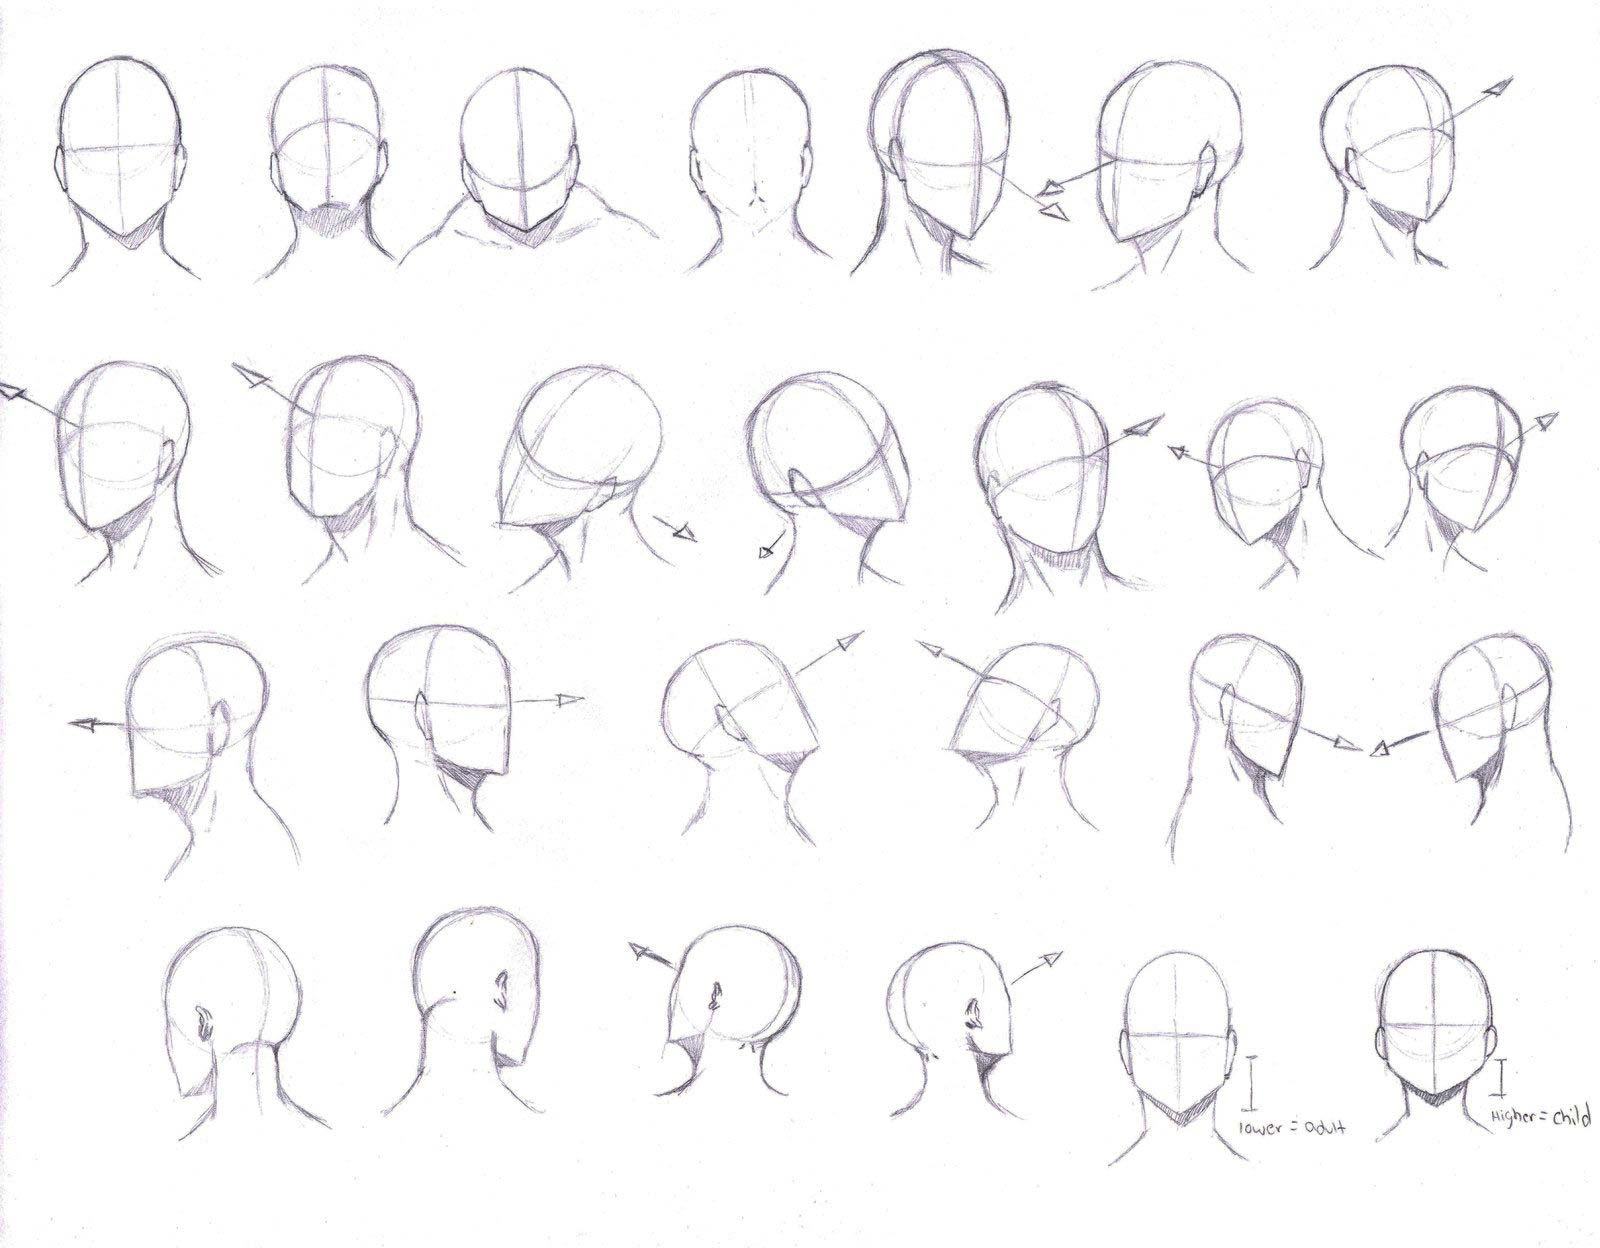 Head drawing reference